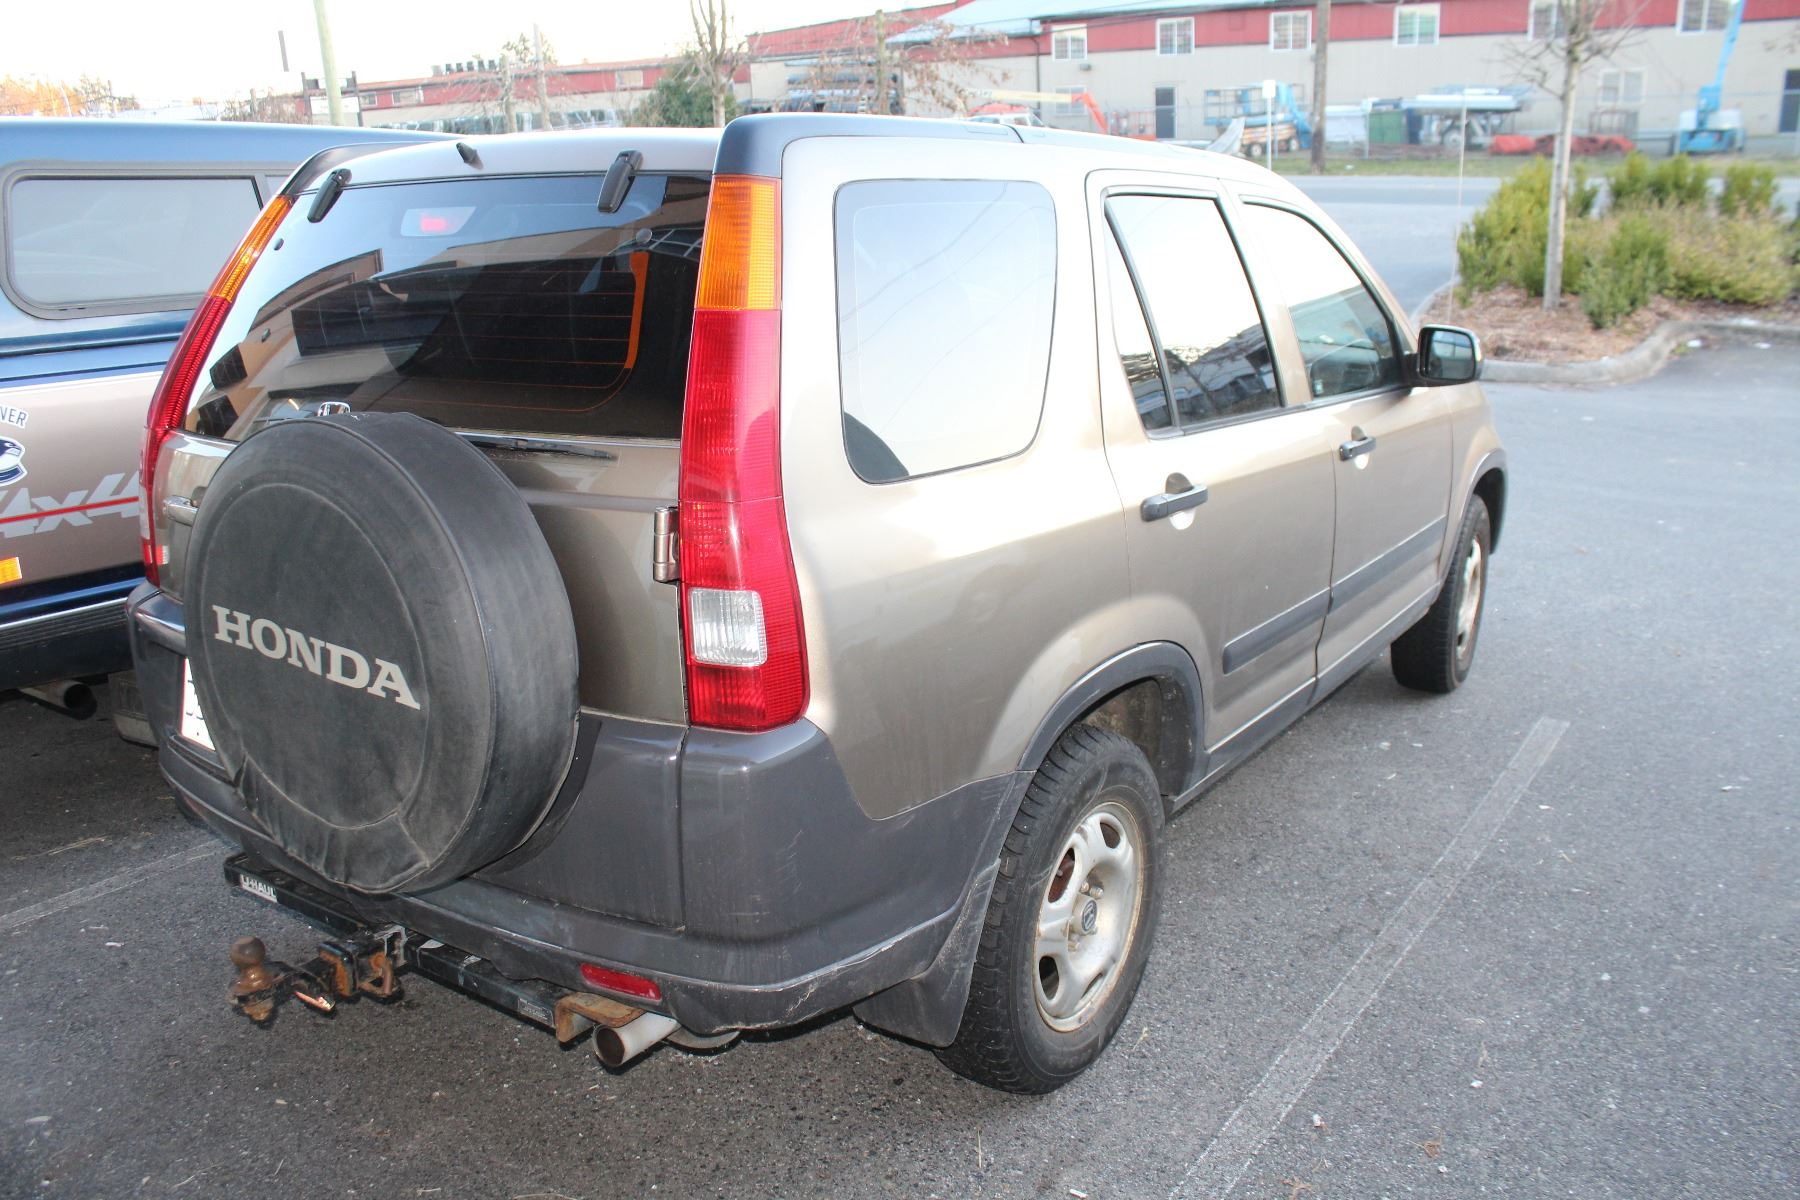 2003 Honda Crv 144000 Miles 2wd Automatic With Keys And Registration Cr V Image 5 4